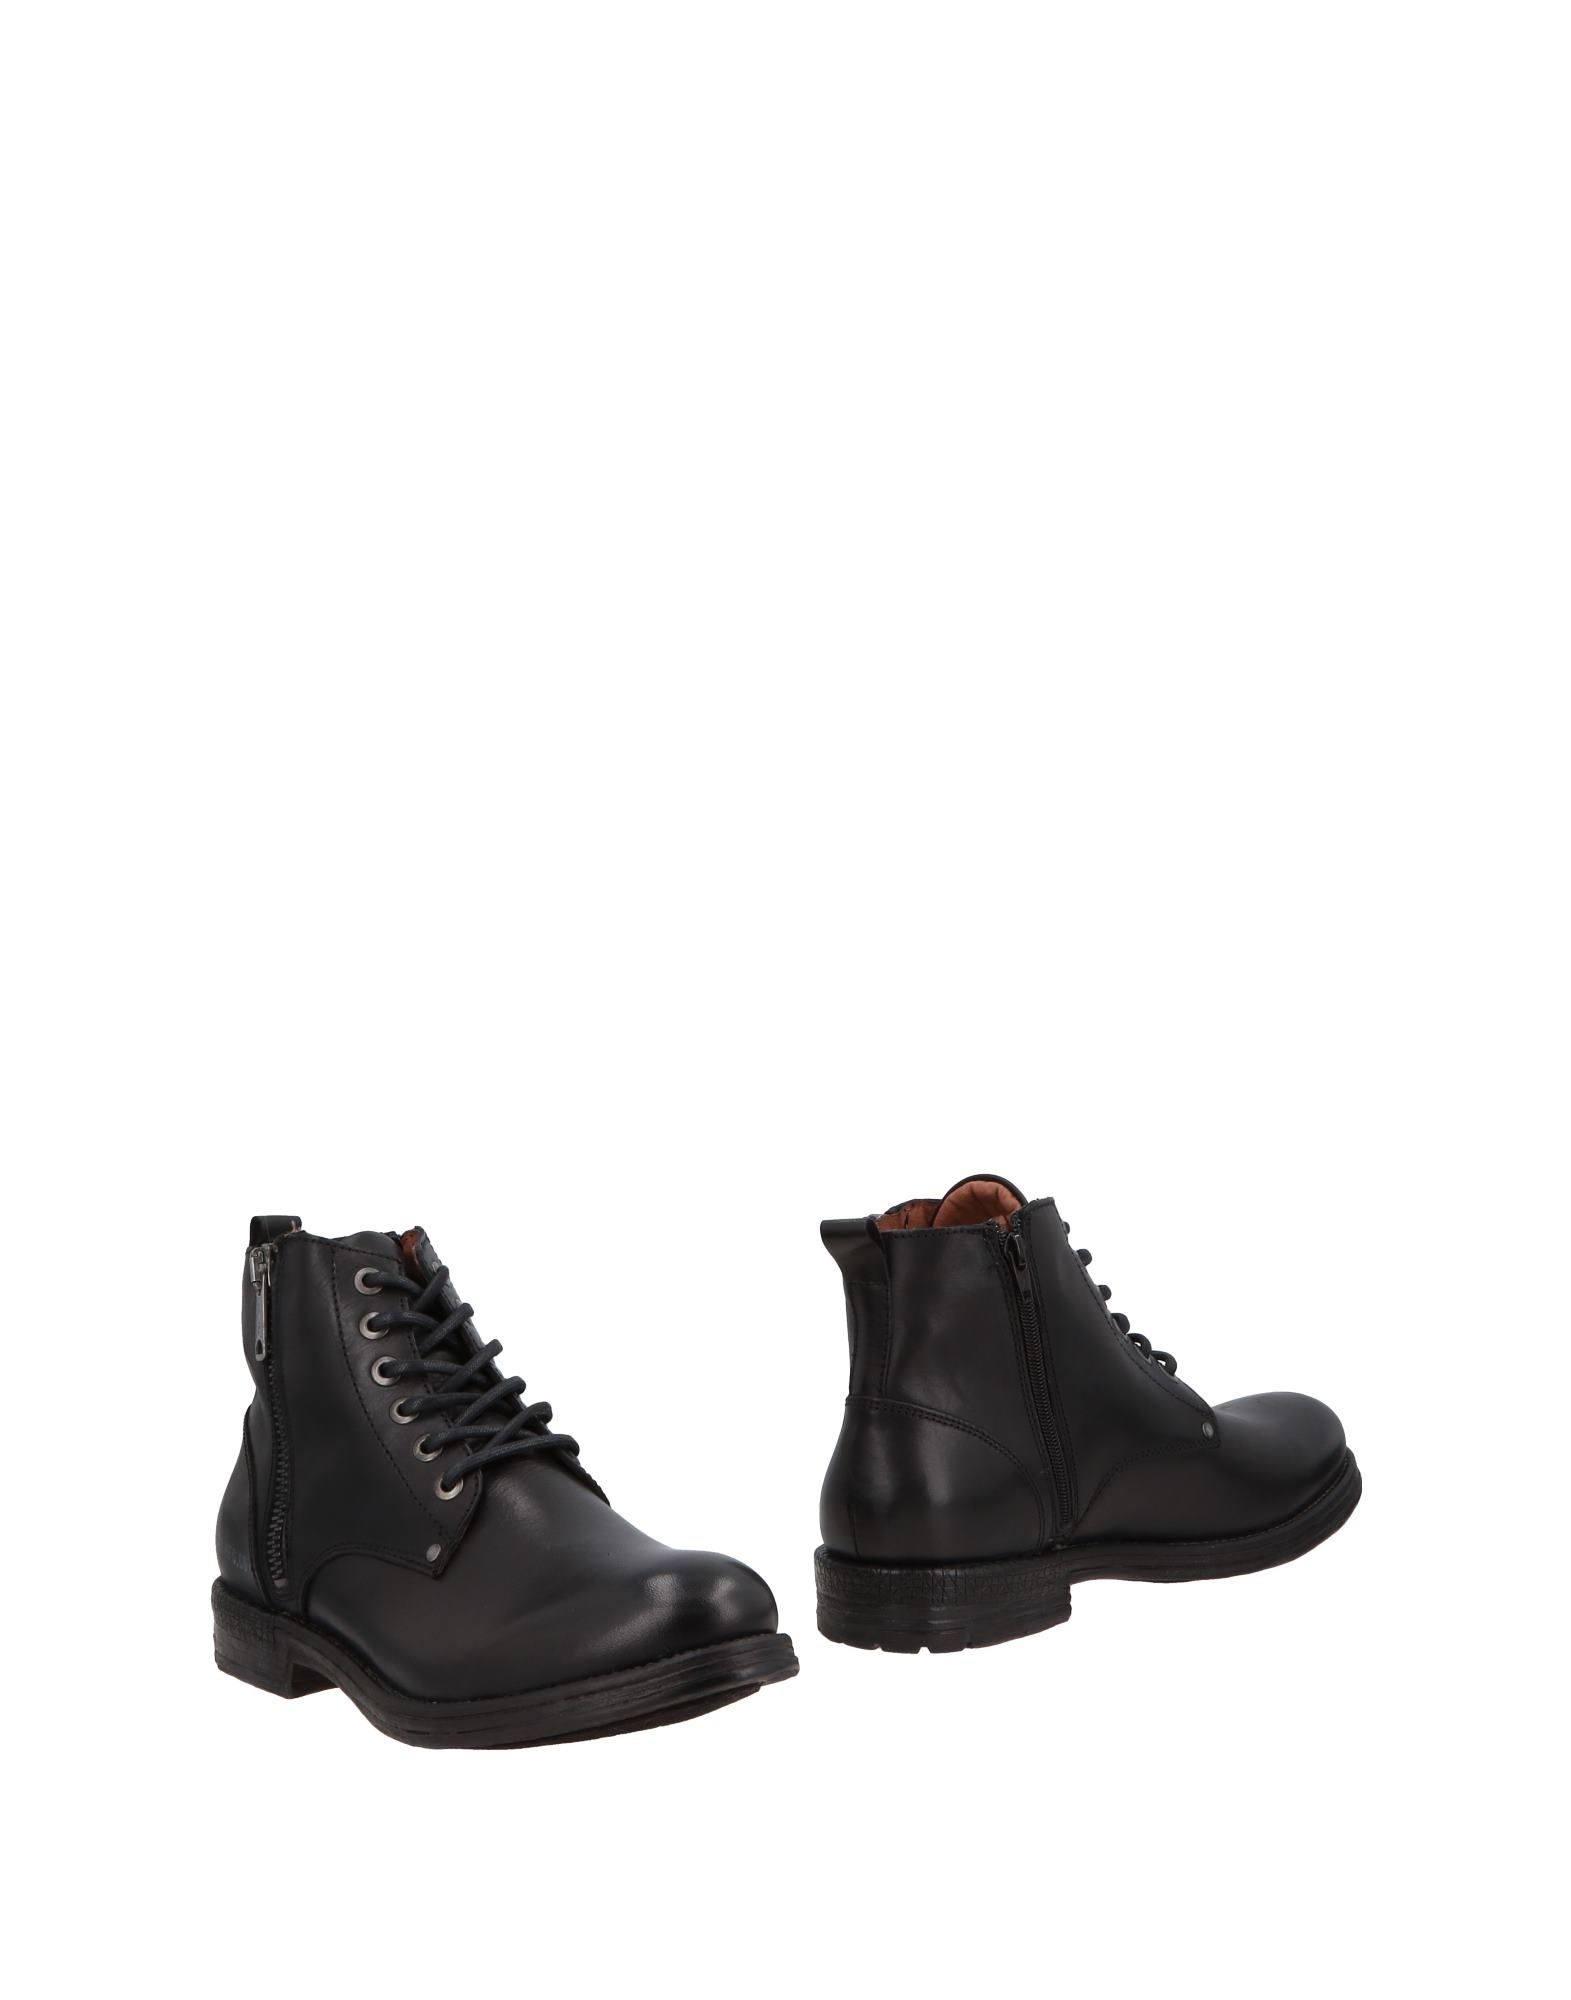 REPLAY Boots in Black